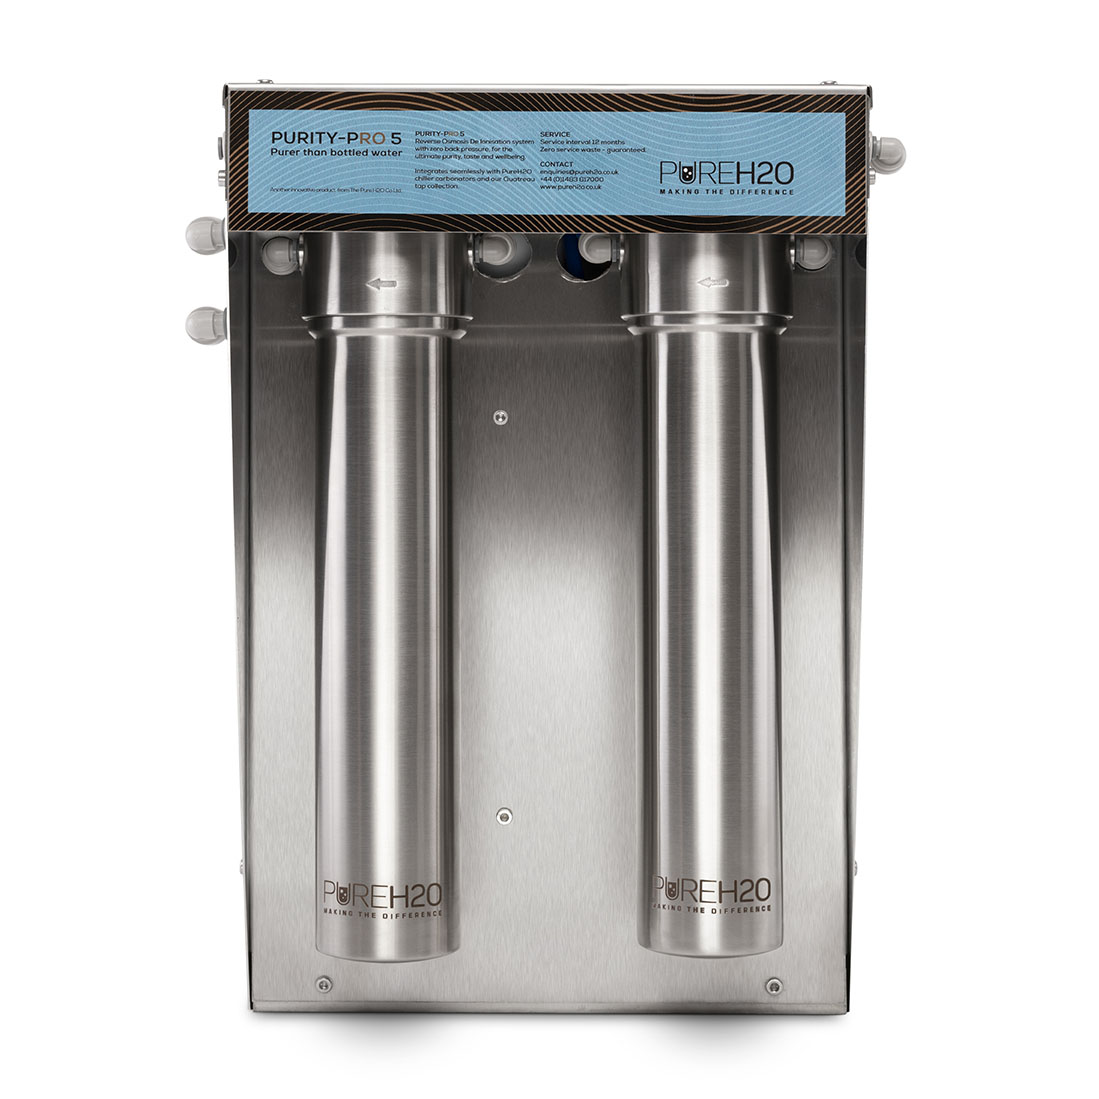 PureH2O water purifier removes plastics from tap awter.